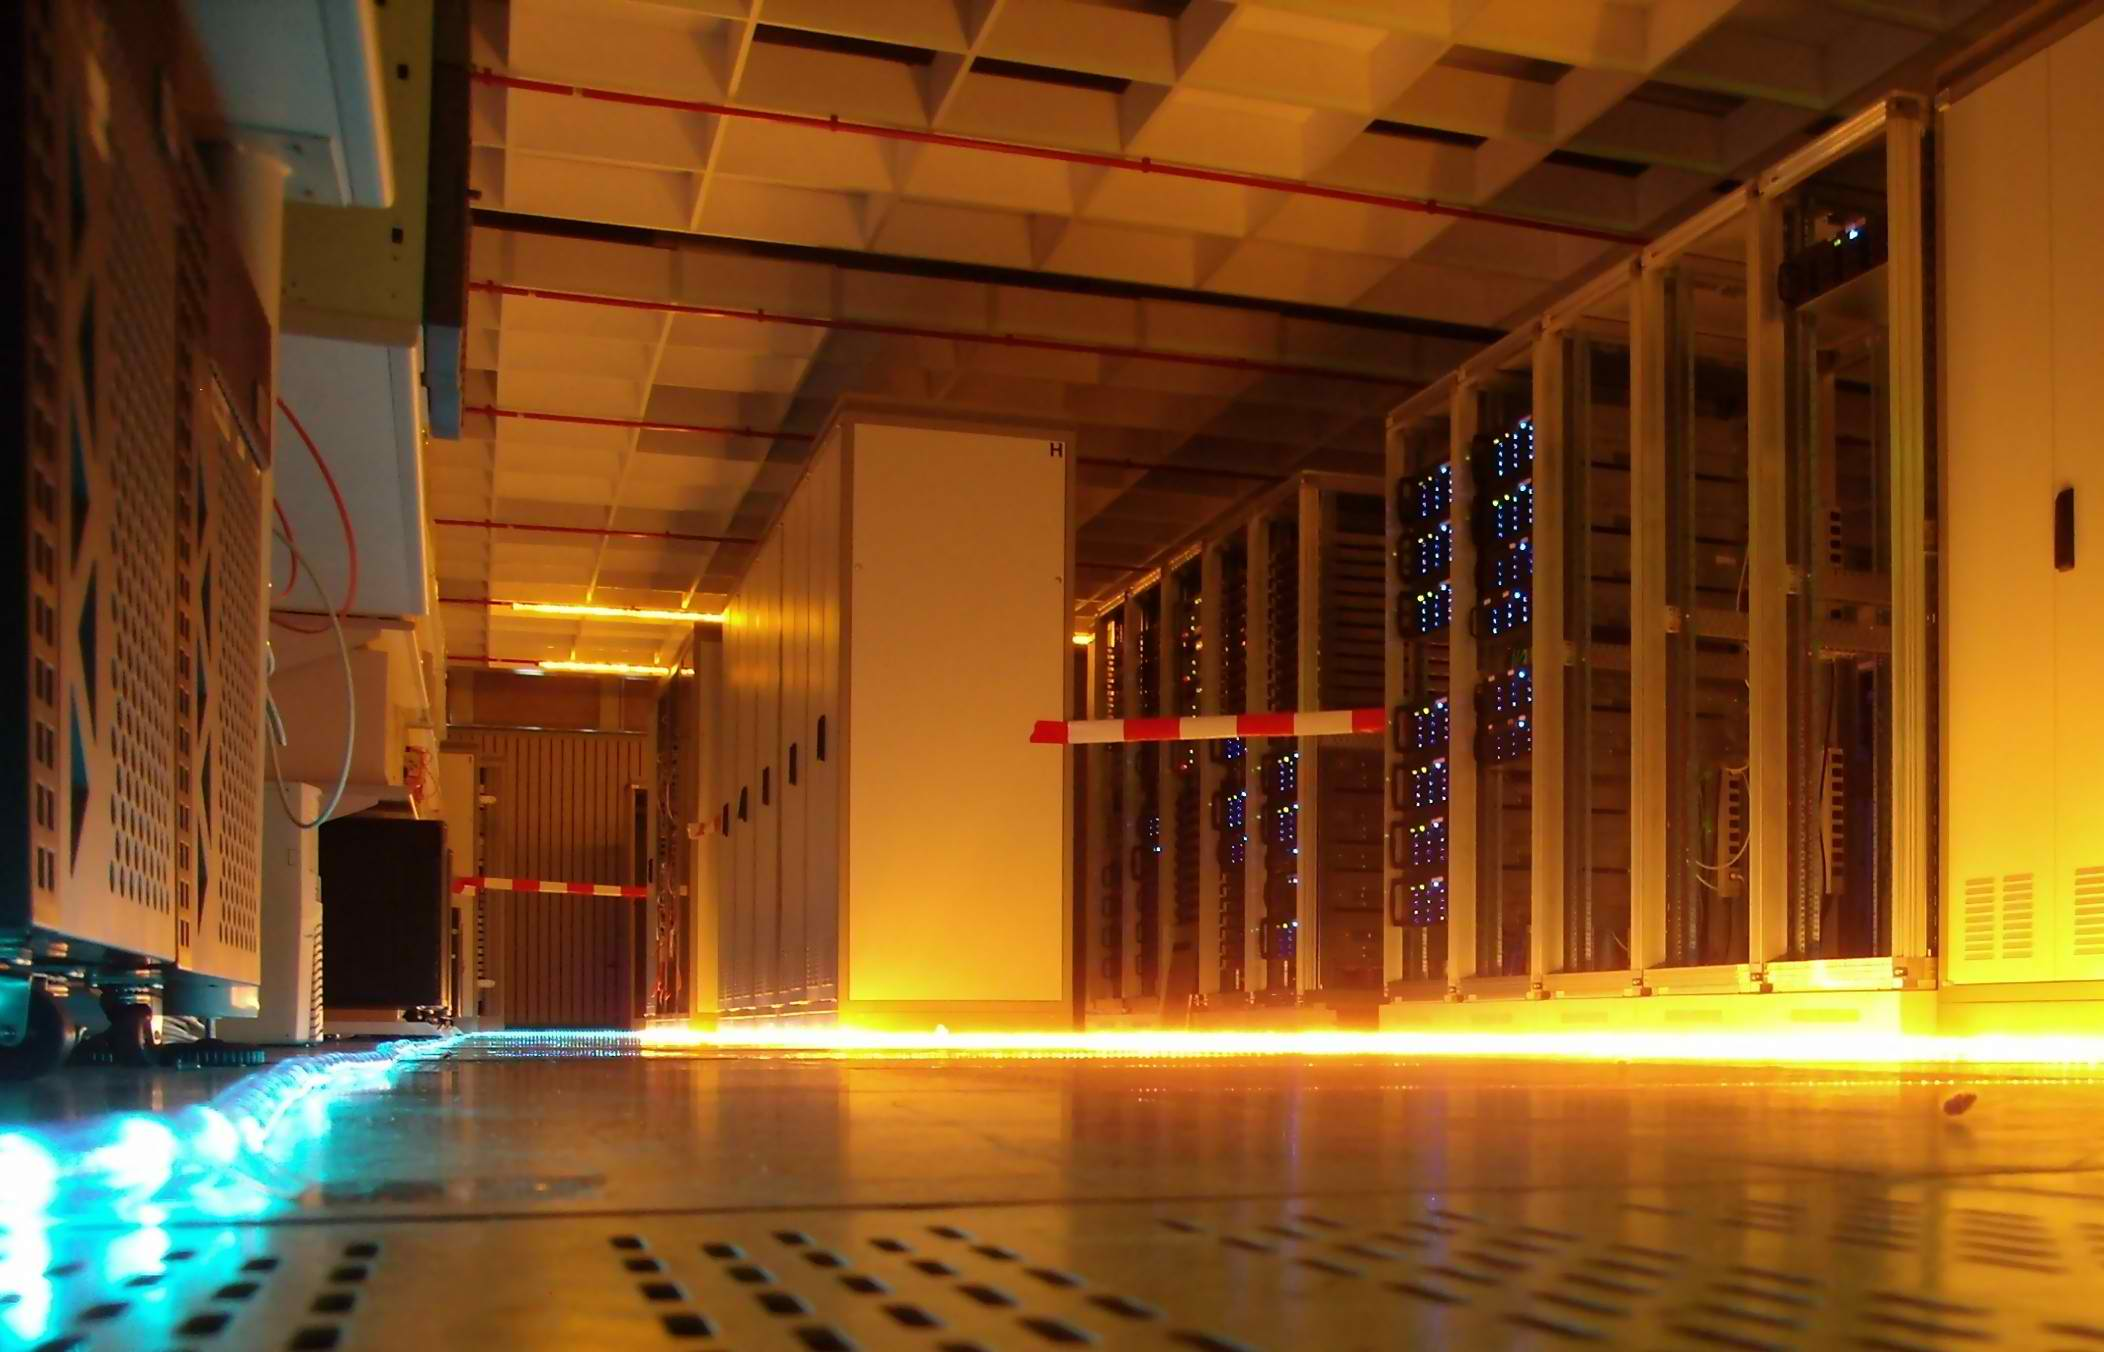 6 questions to ask before choosing a data center colocation provider